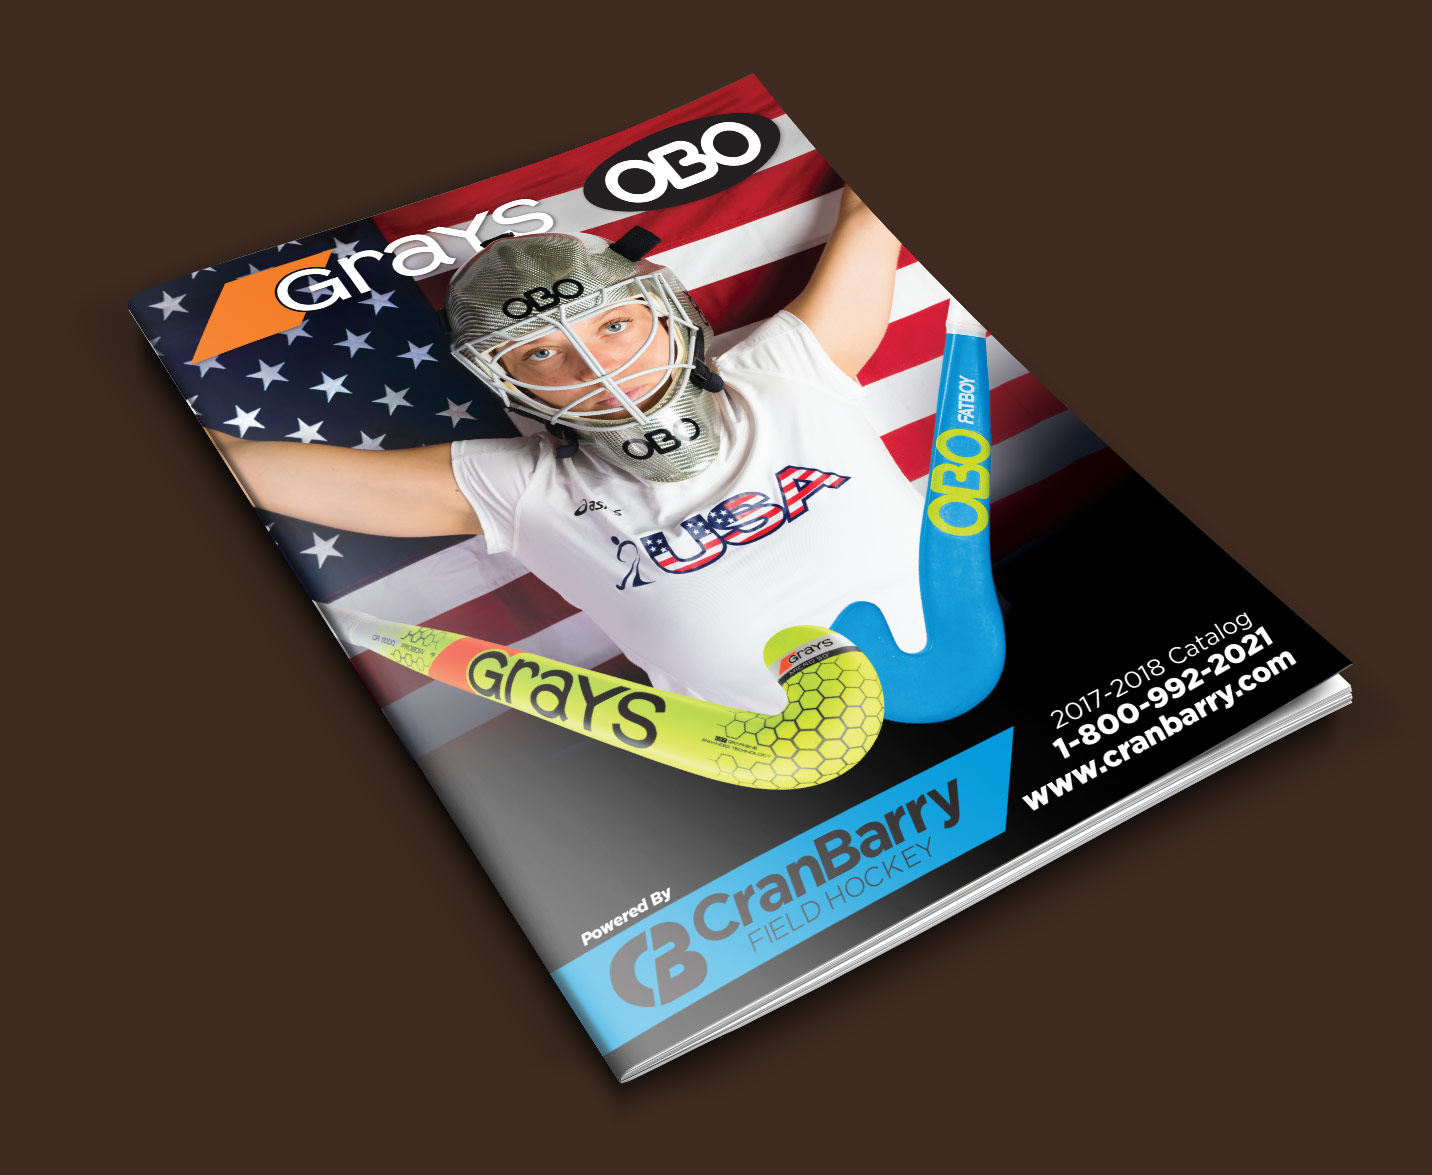 CranBarry-Grays-FieldHockey-2017-Cover